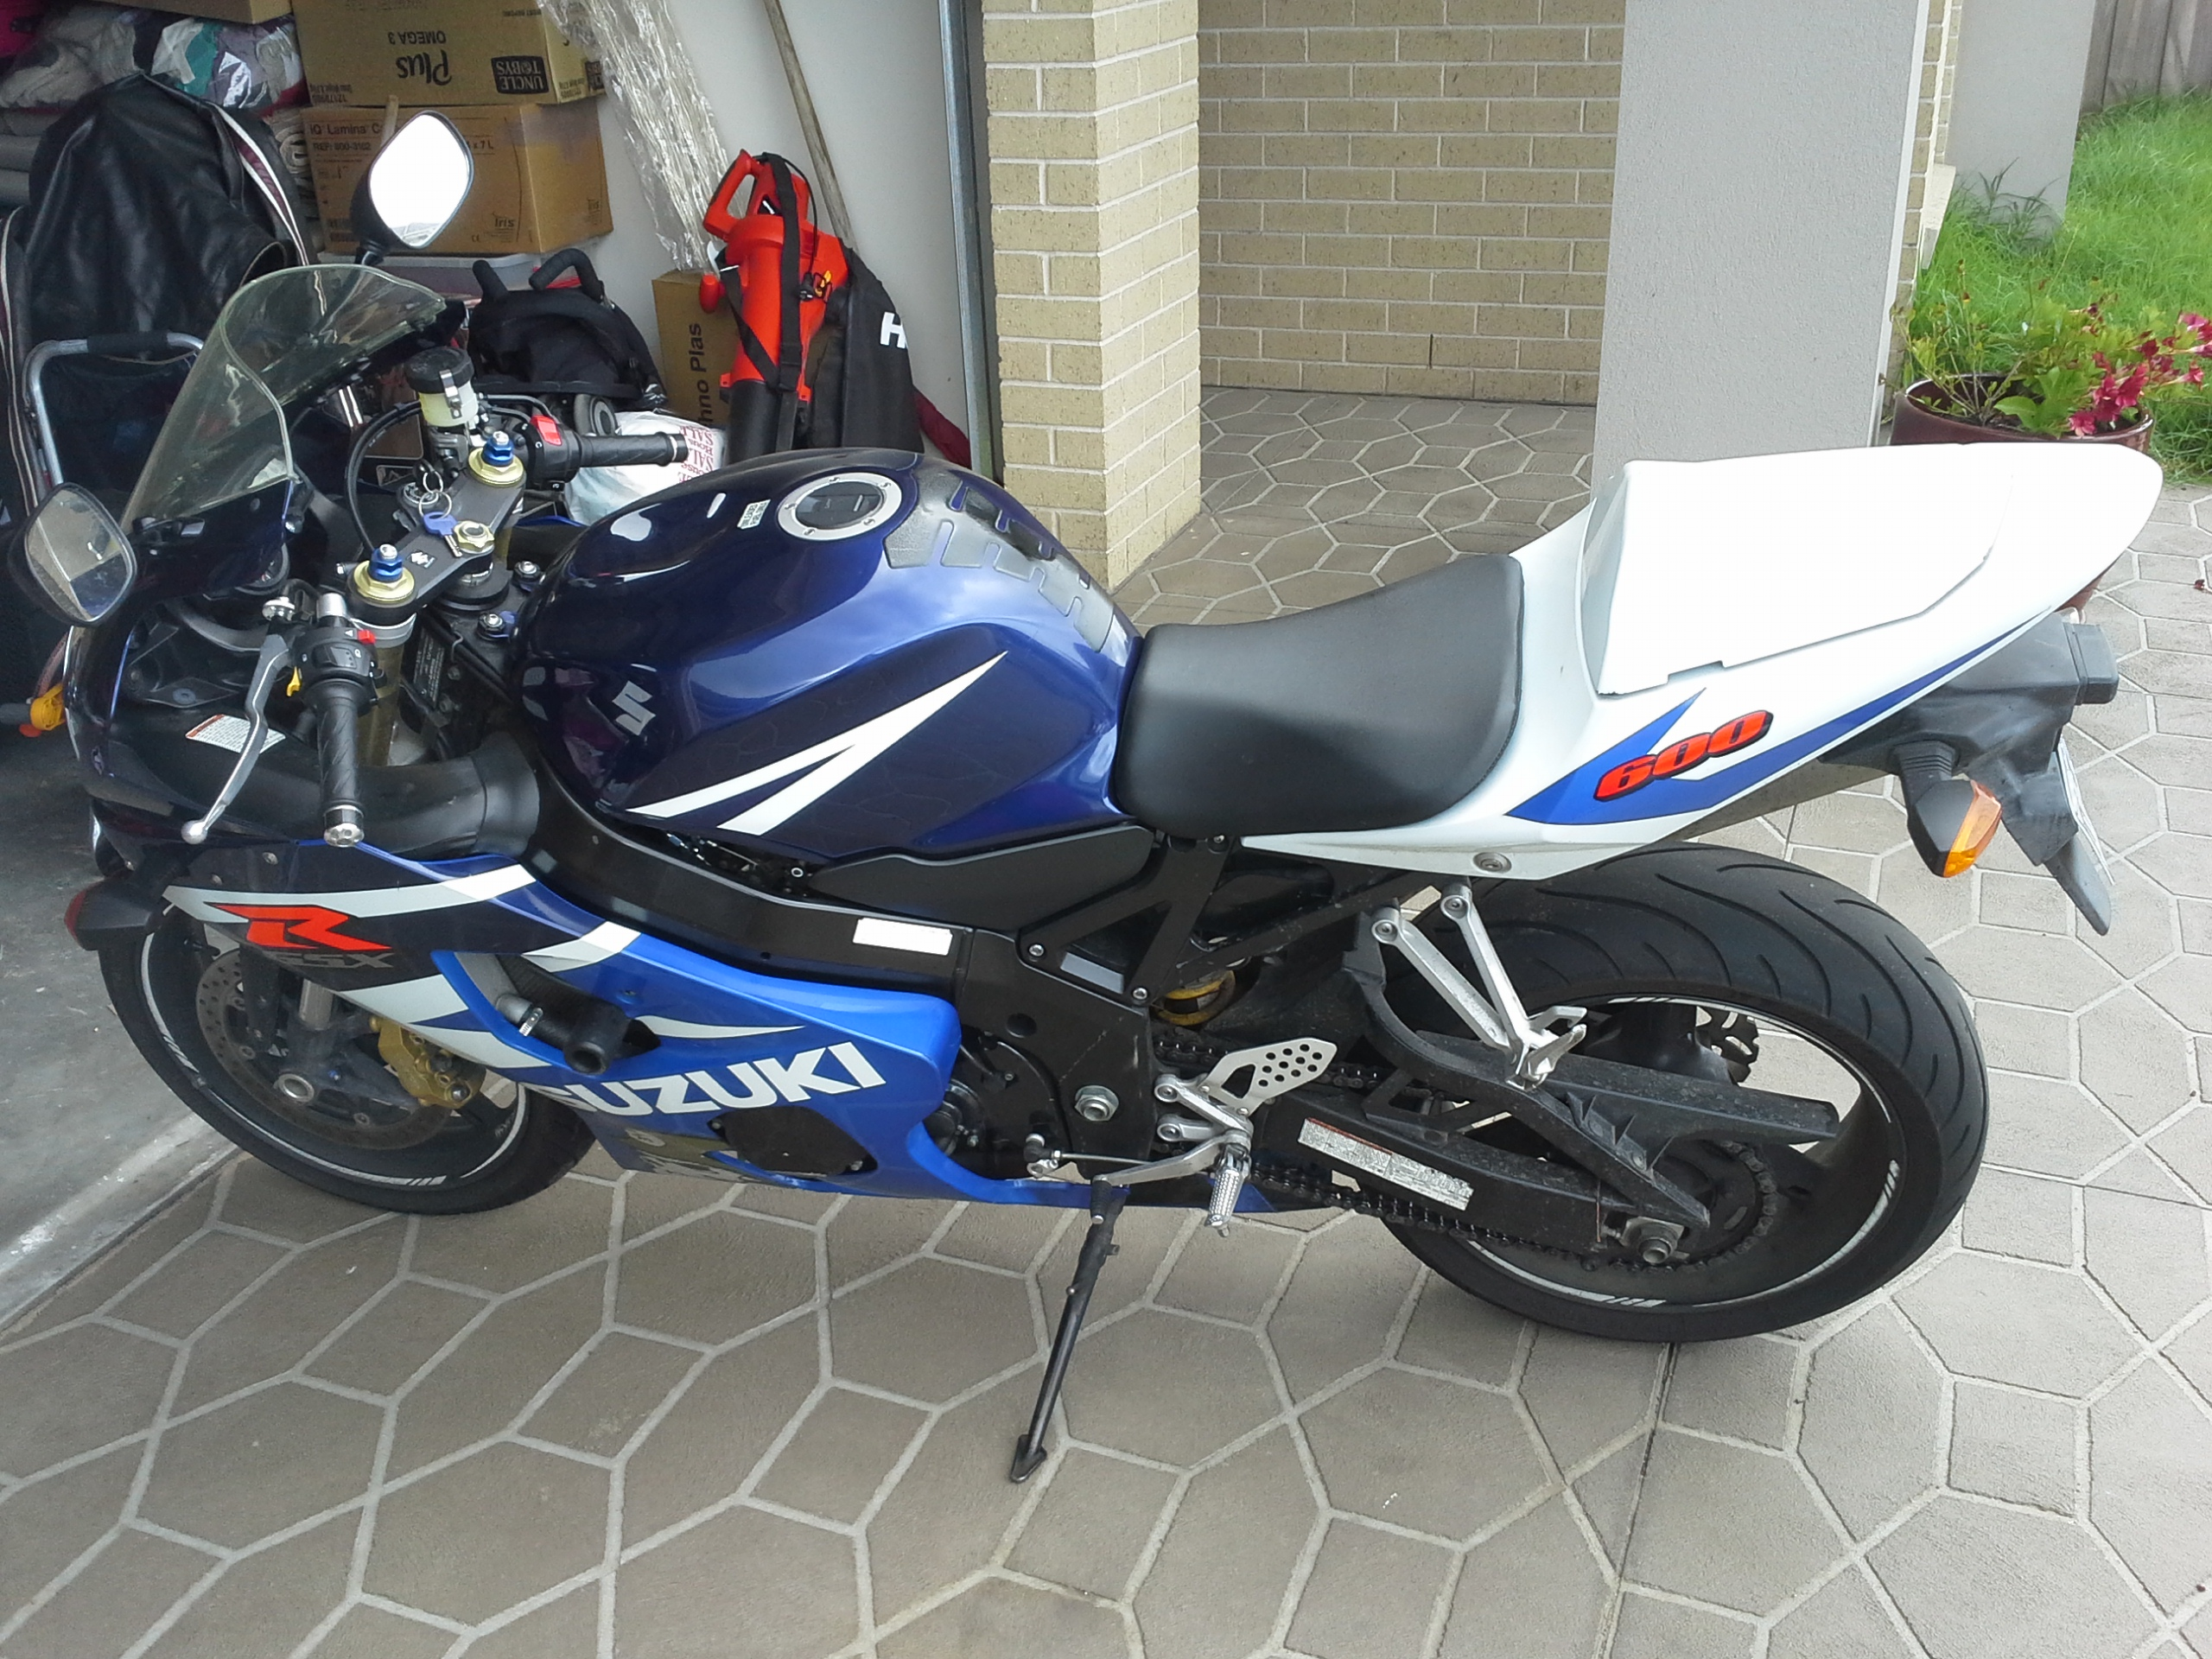 2004 suzuki gsx r600 k4 bike sales vic melbourne 2587688. Black Bedroom Furniture Sets. Home Design Ideas